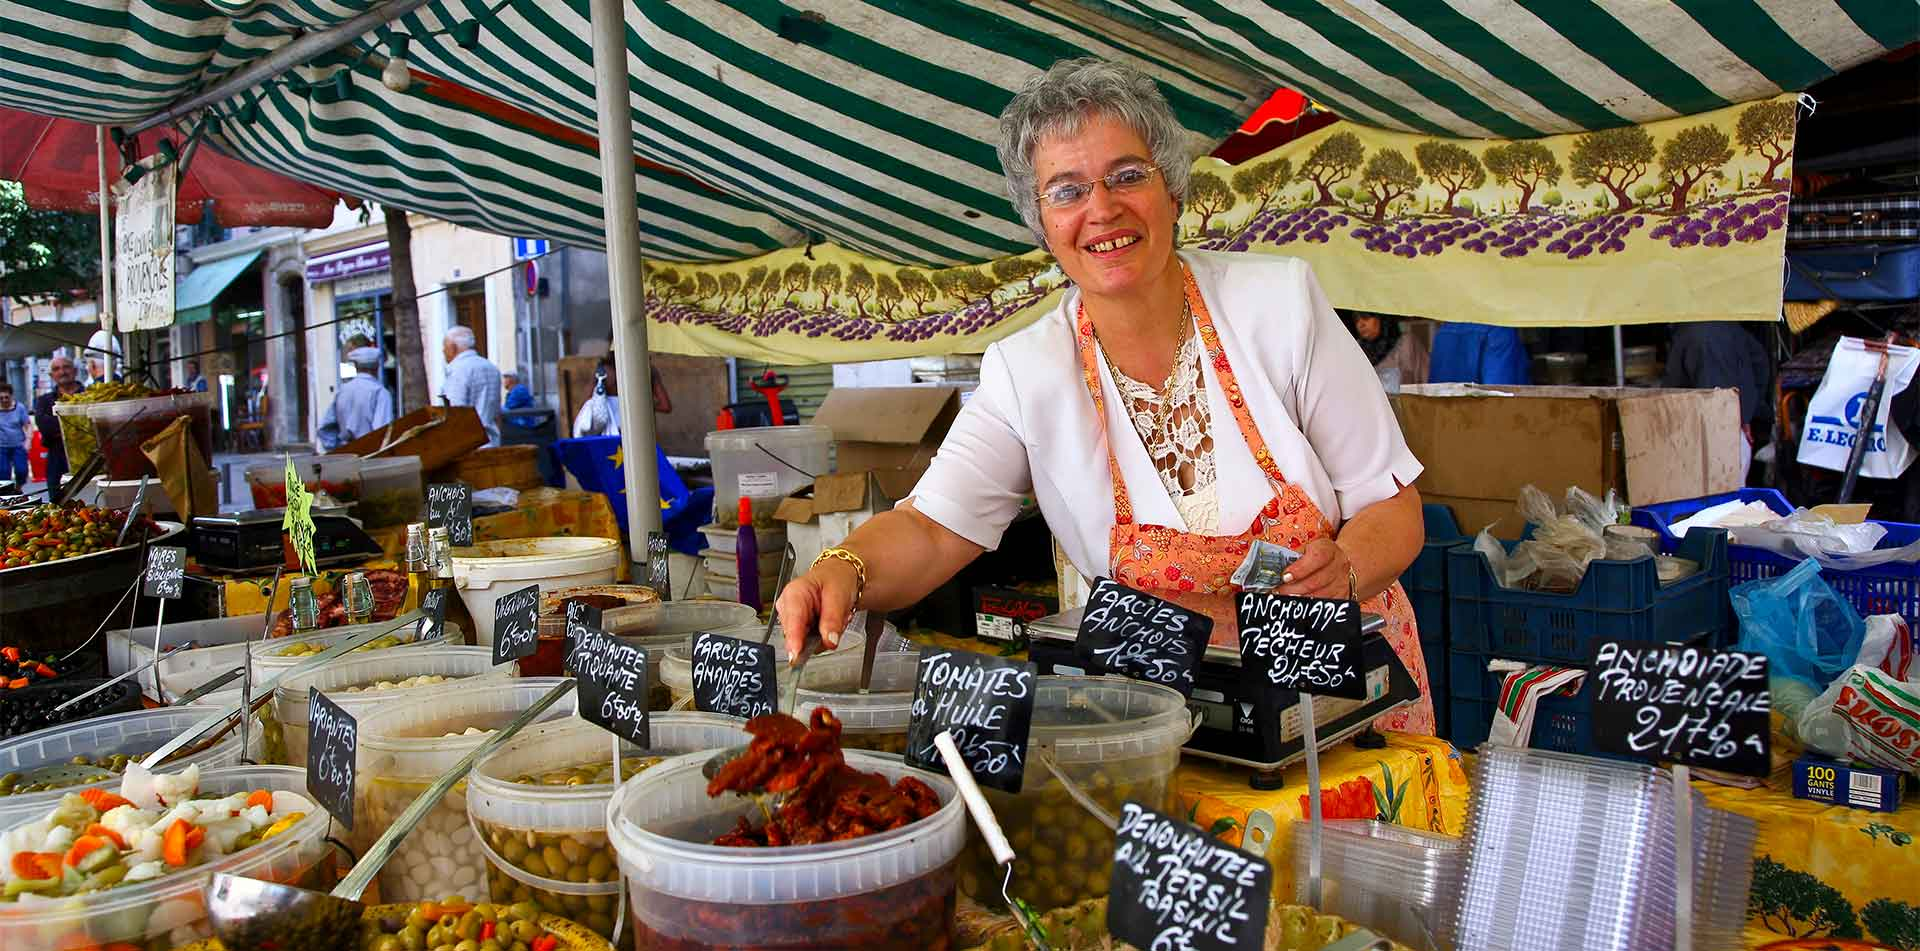 Europe France Provence French woman in market selling food olives and sun-dried tomatoes - luxury vacation destinations